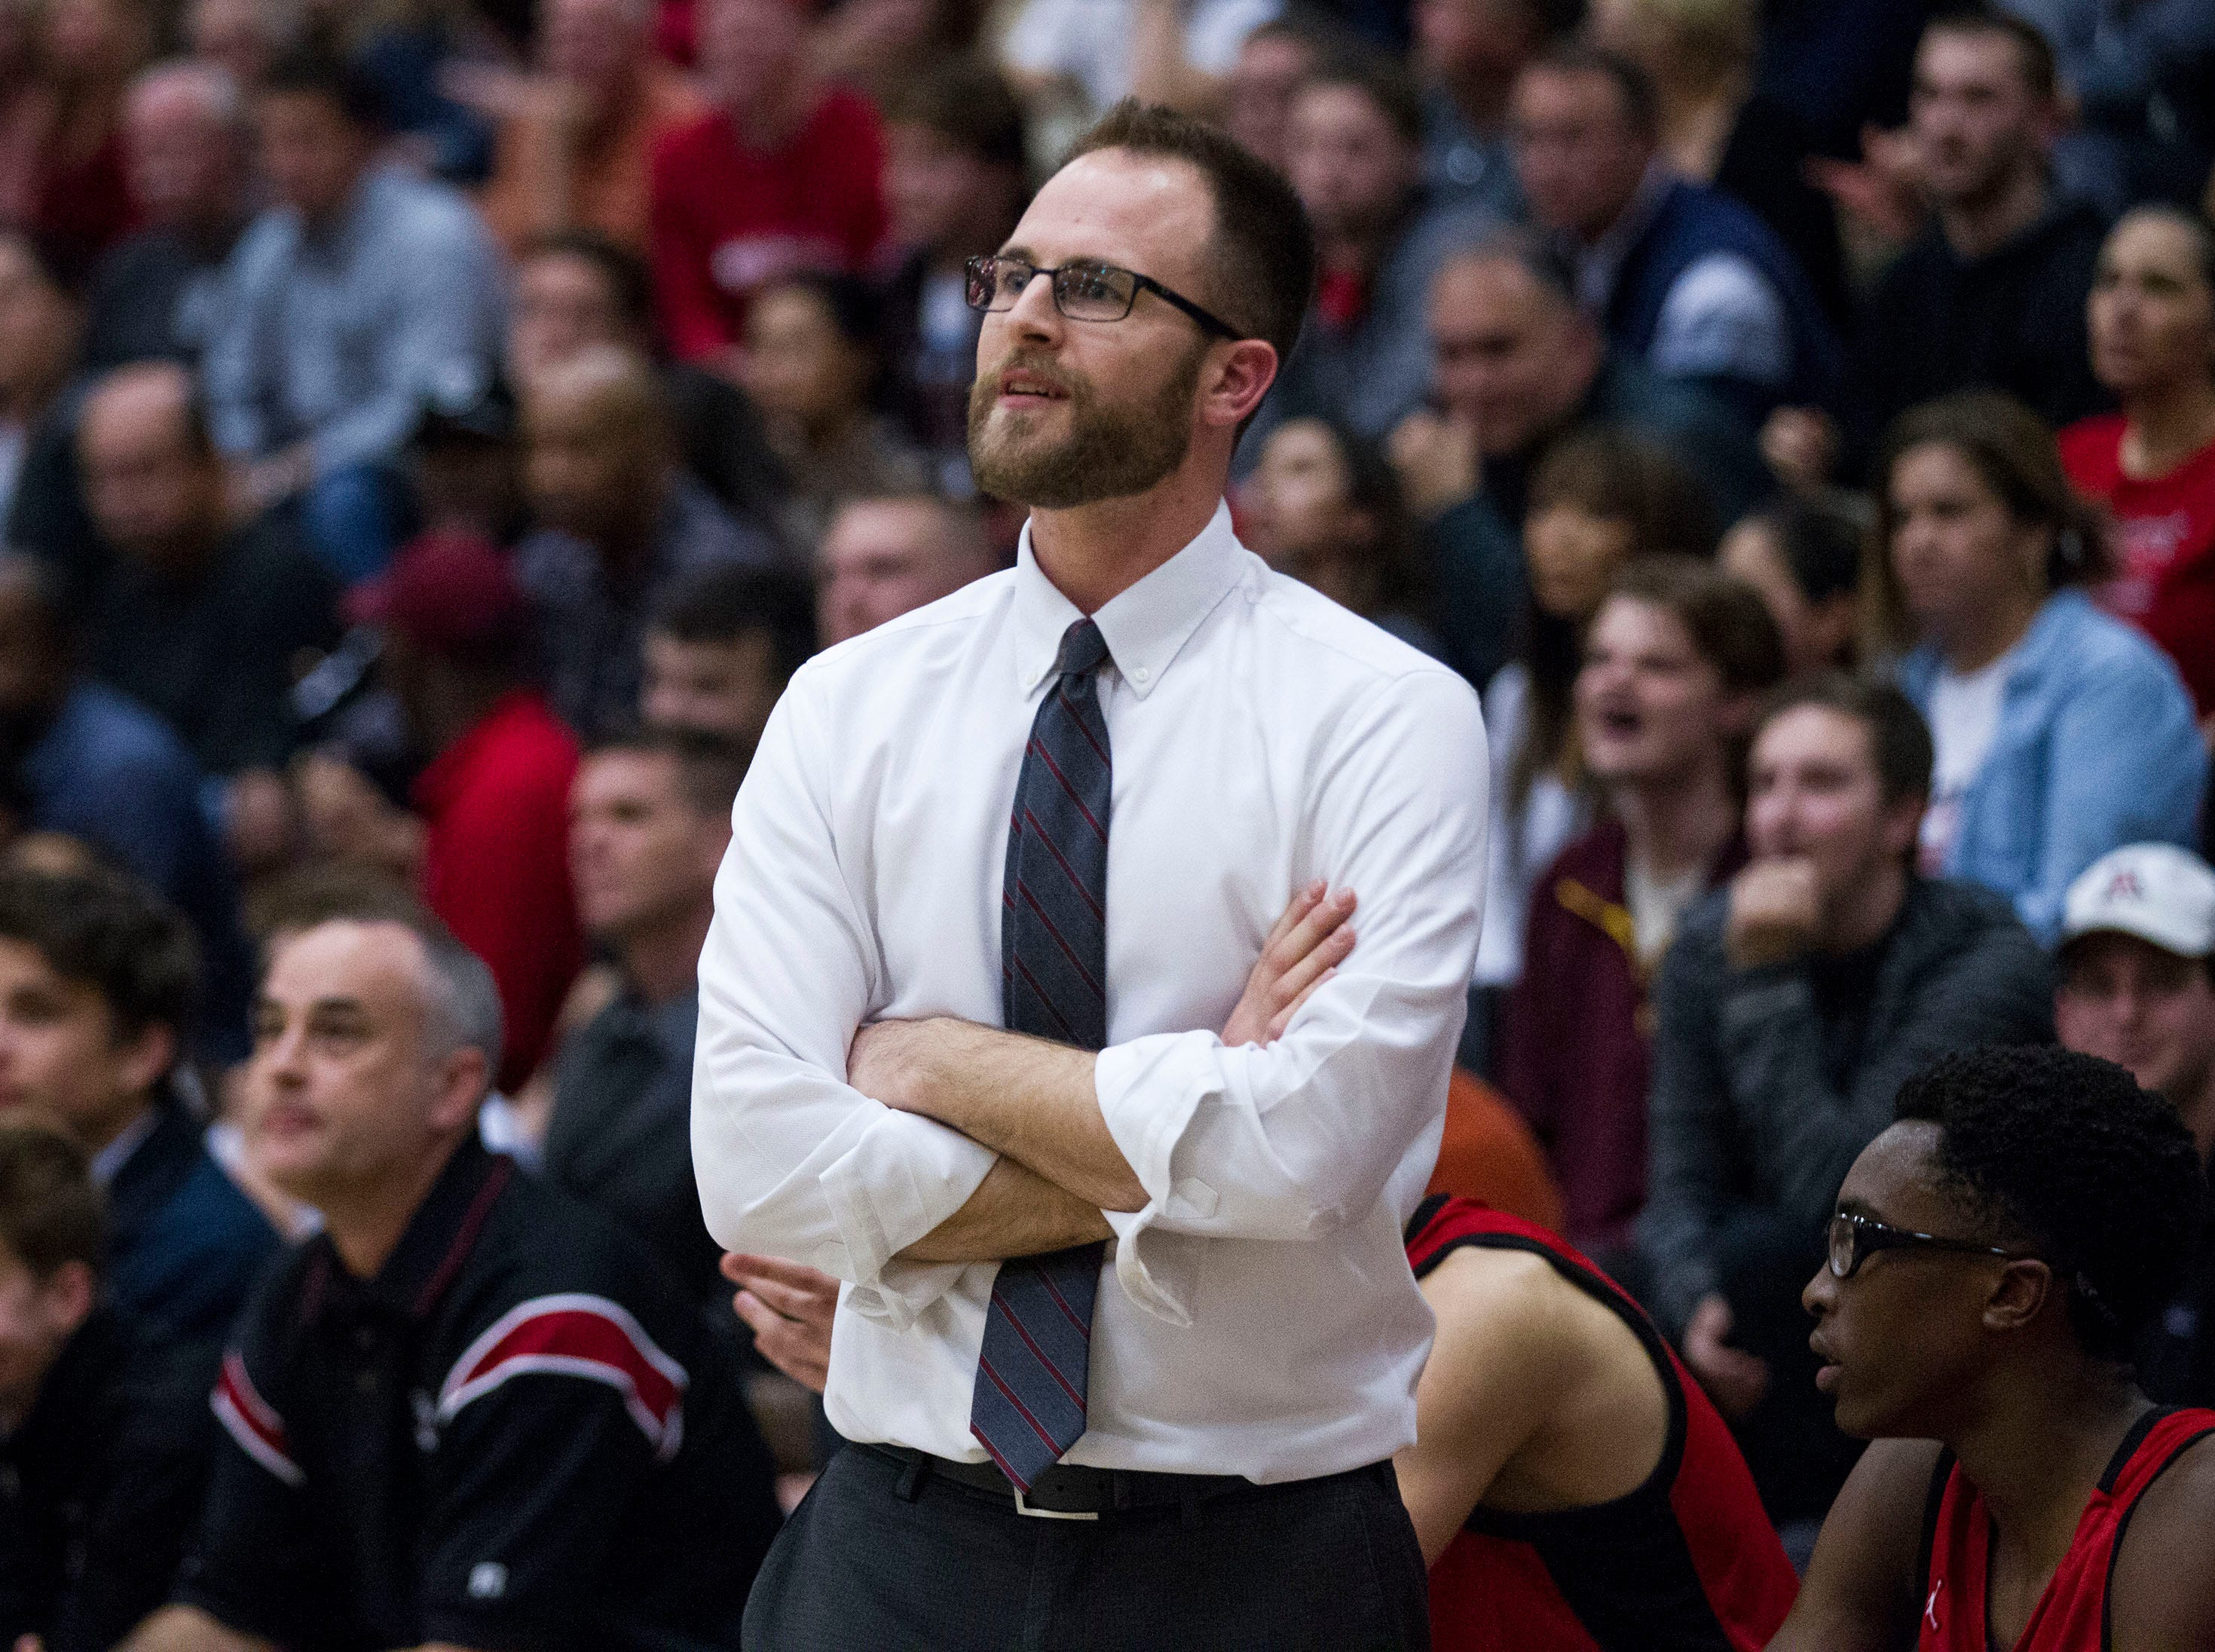 Brophy head coach Matt HootenÊwatches his team against Pinnacle  during their game in Phoenix, Friday, Dec. 21, 2018.